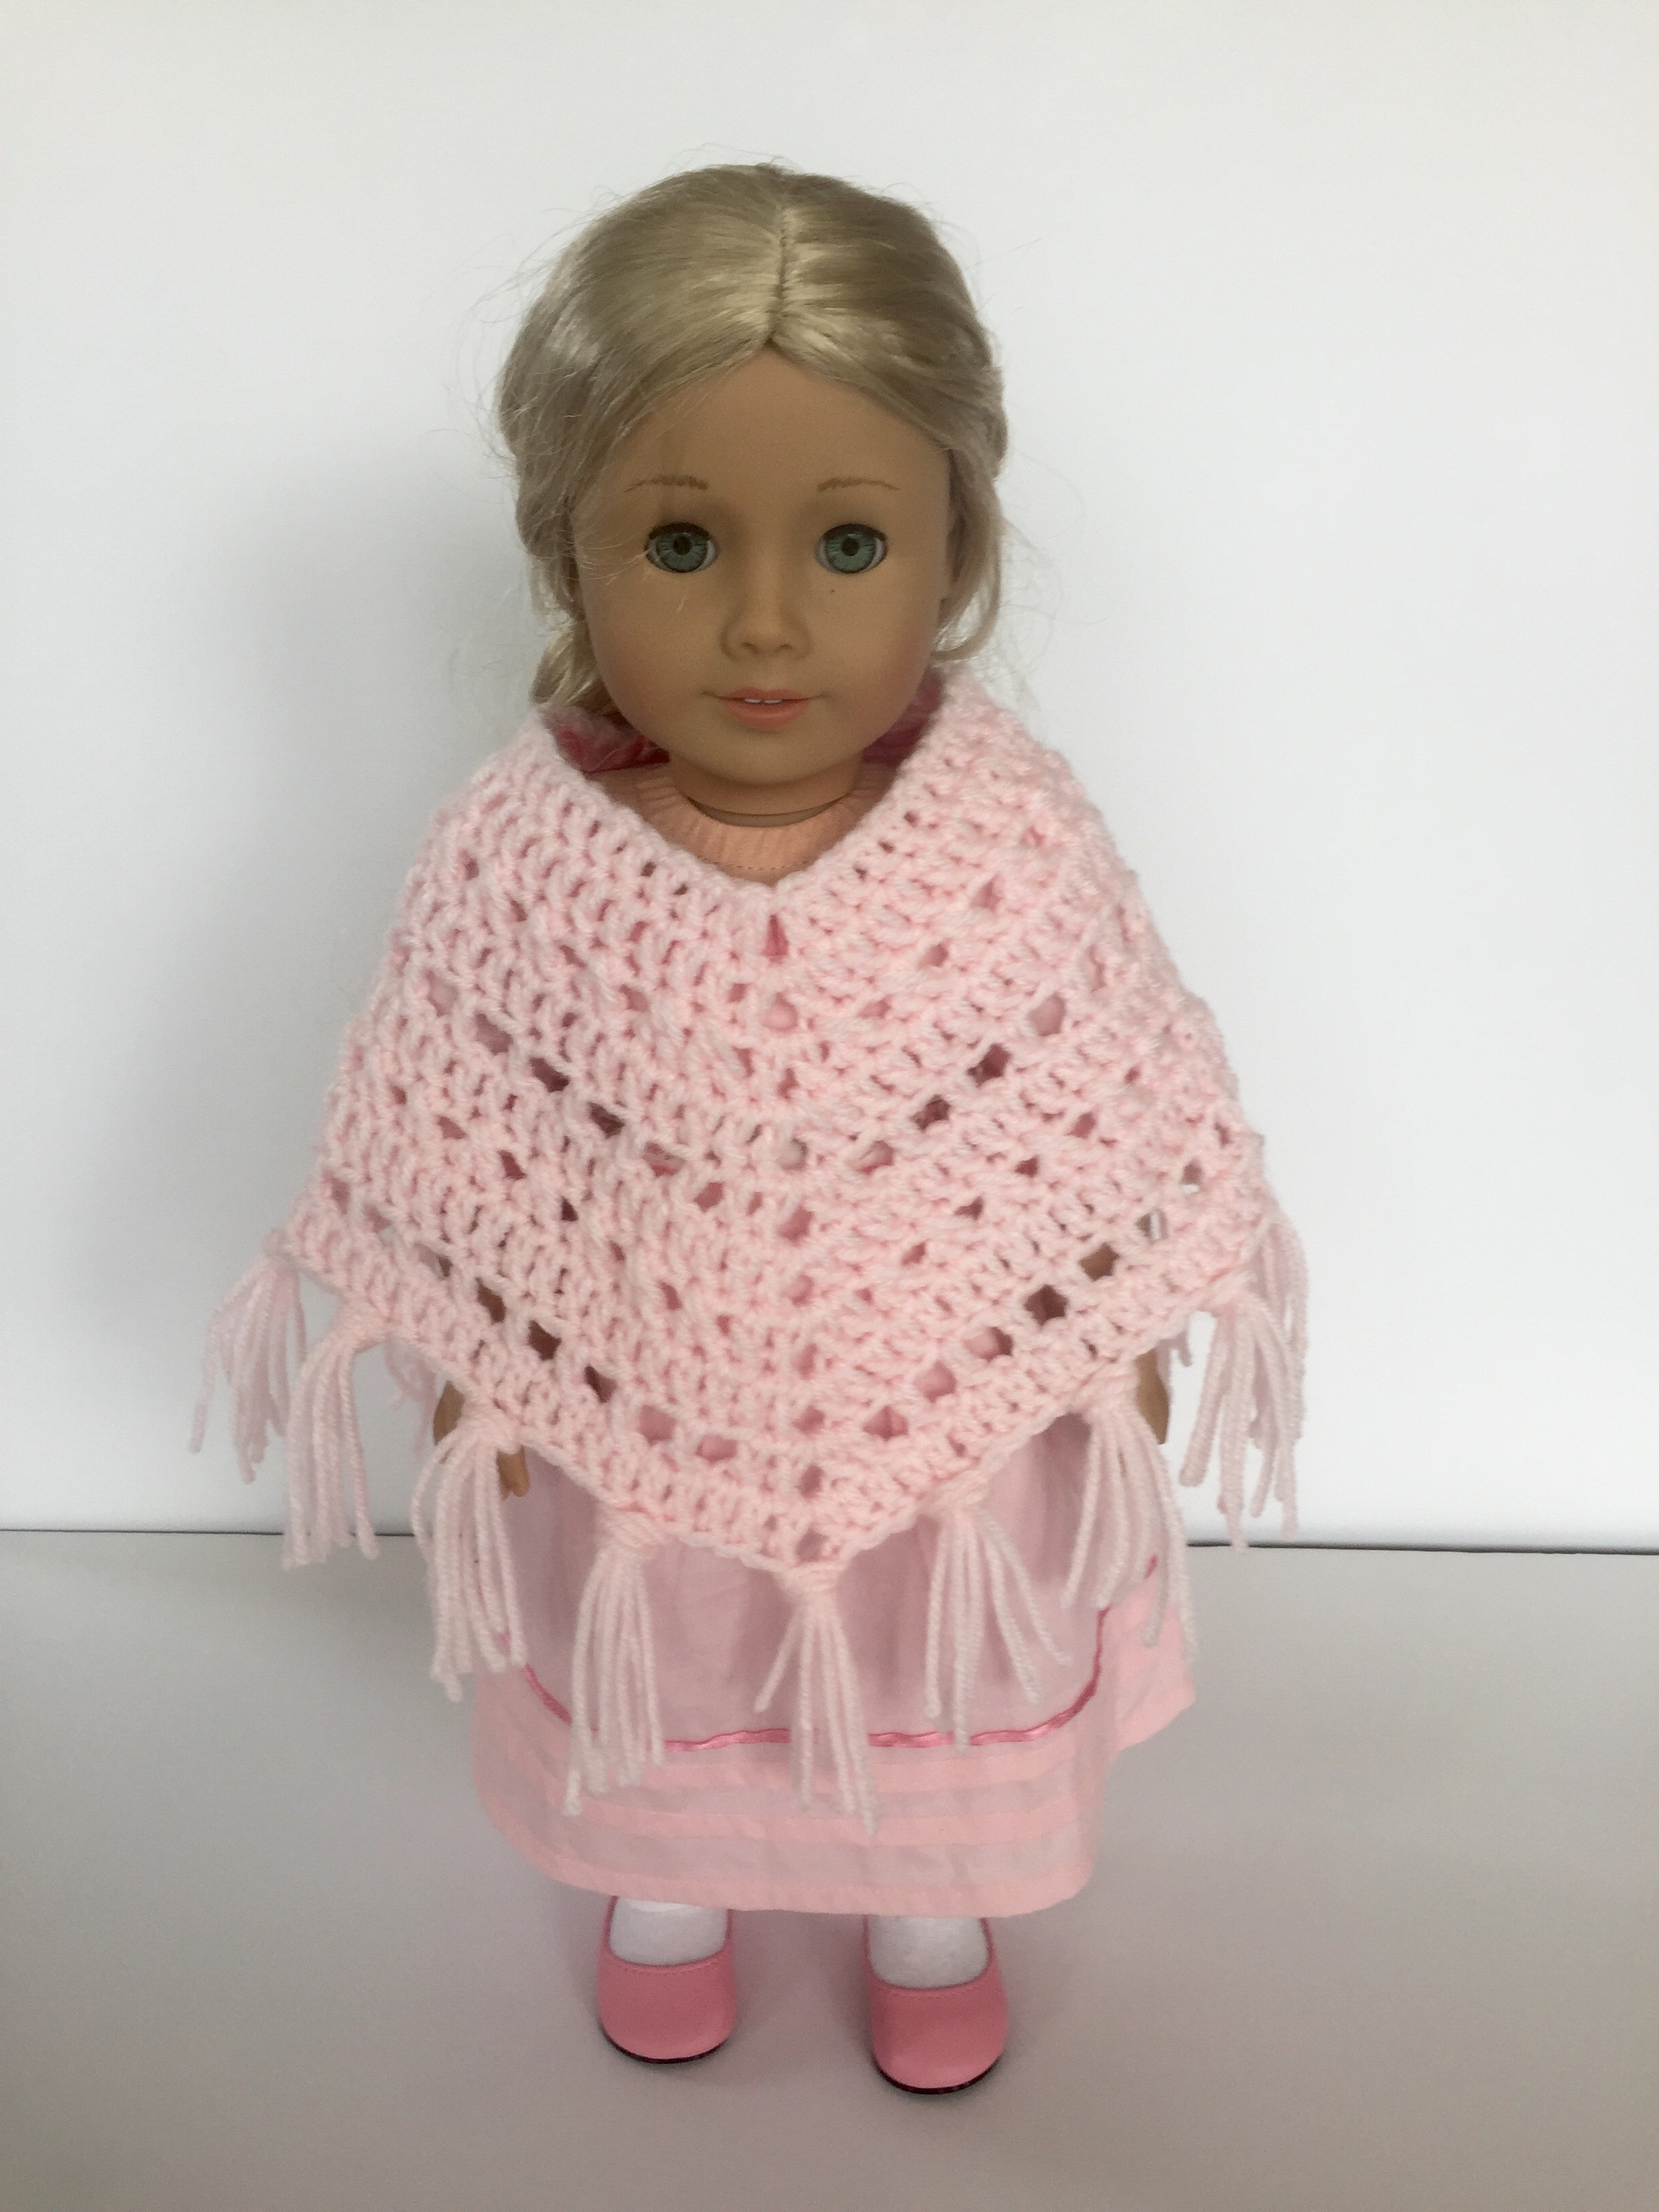 List of Free Crochet Patterns for Toddlers Ponchos Free Crochet Patterns For18 Inch Dolls Free Crochet Patterns Stuffed